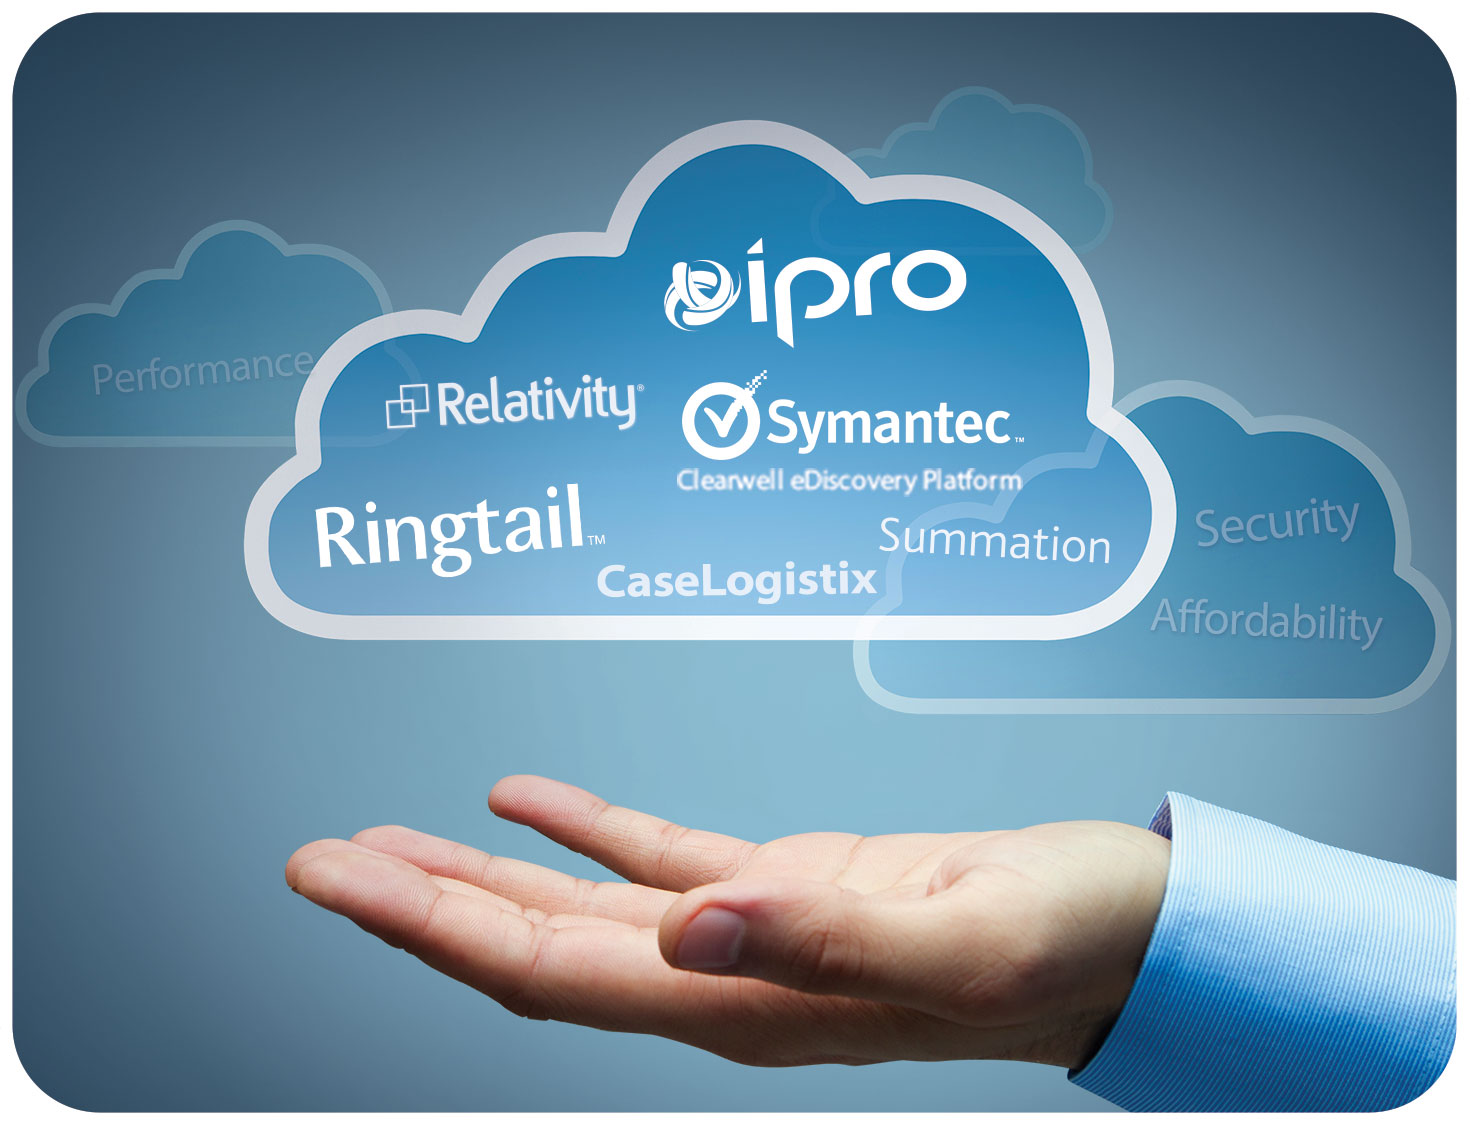 Hand-and-Cloud-Image_rounded_2-1.jpg